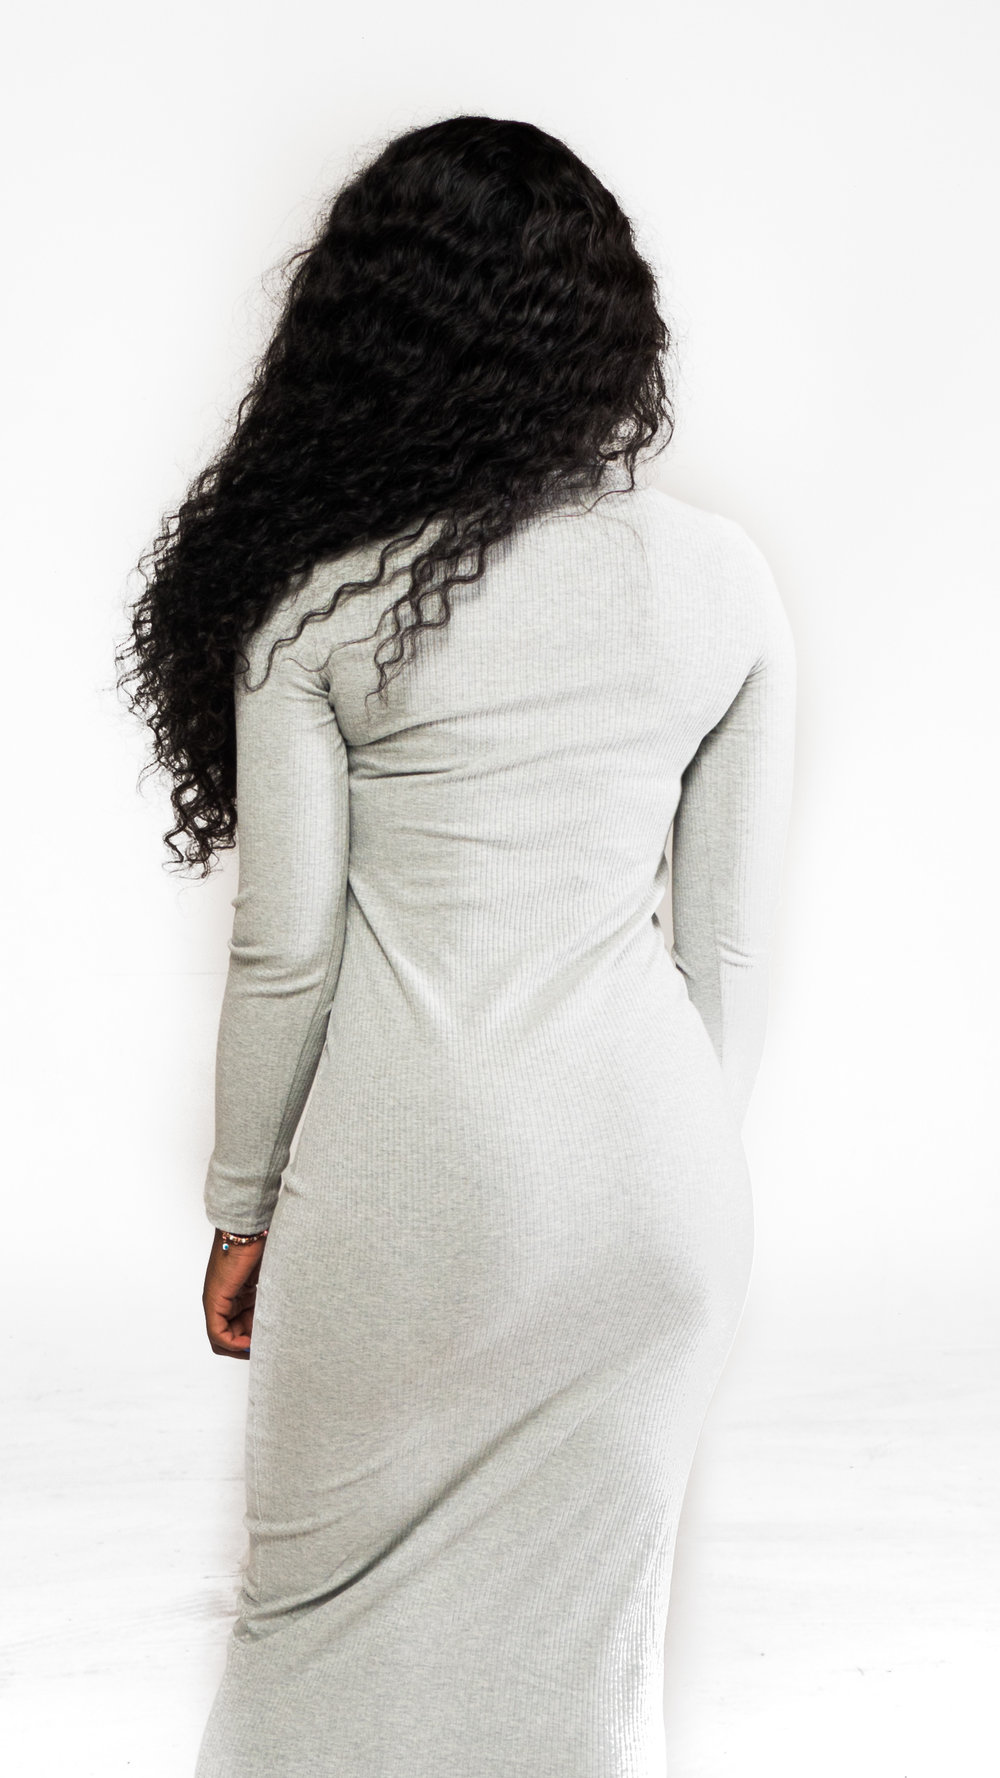 isis clothing - product shots-1580512.jpg